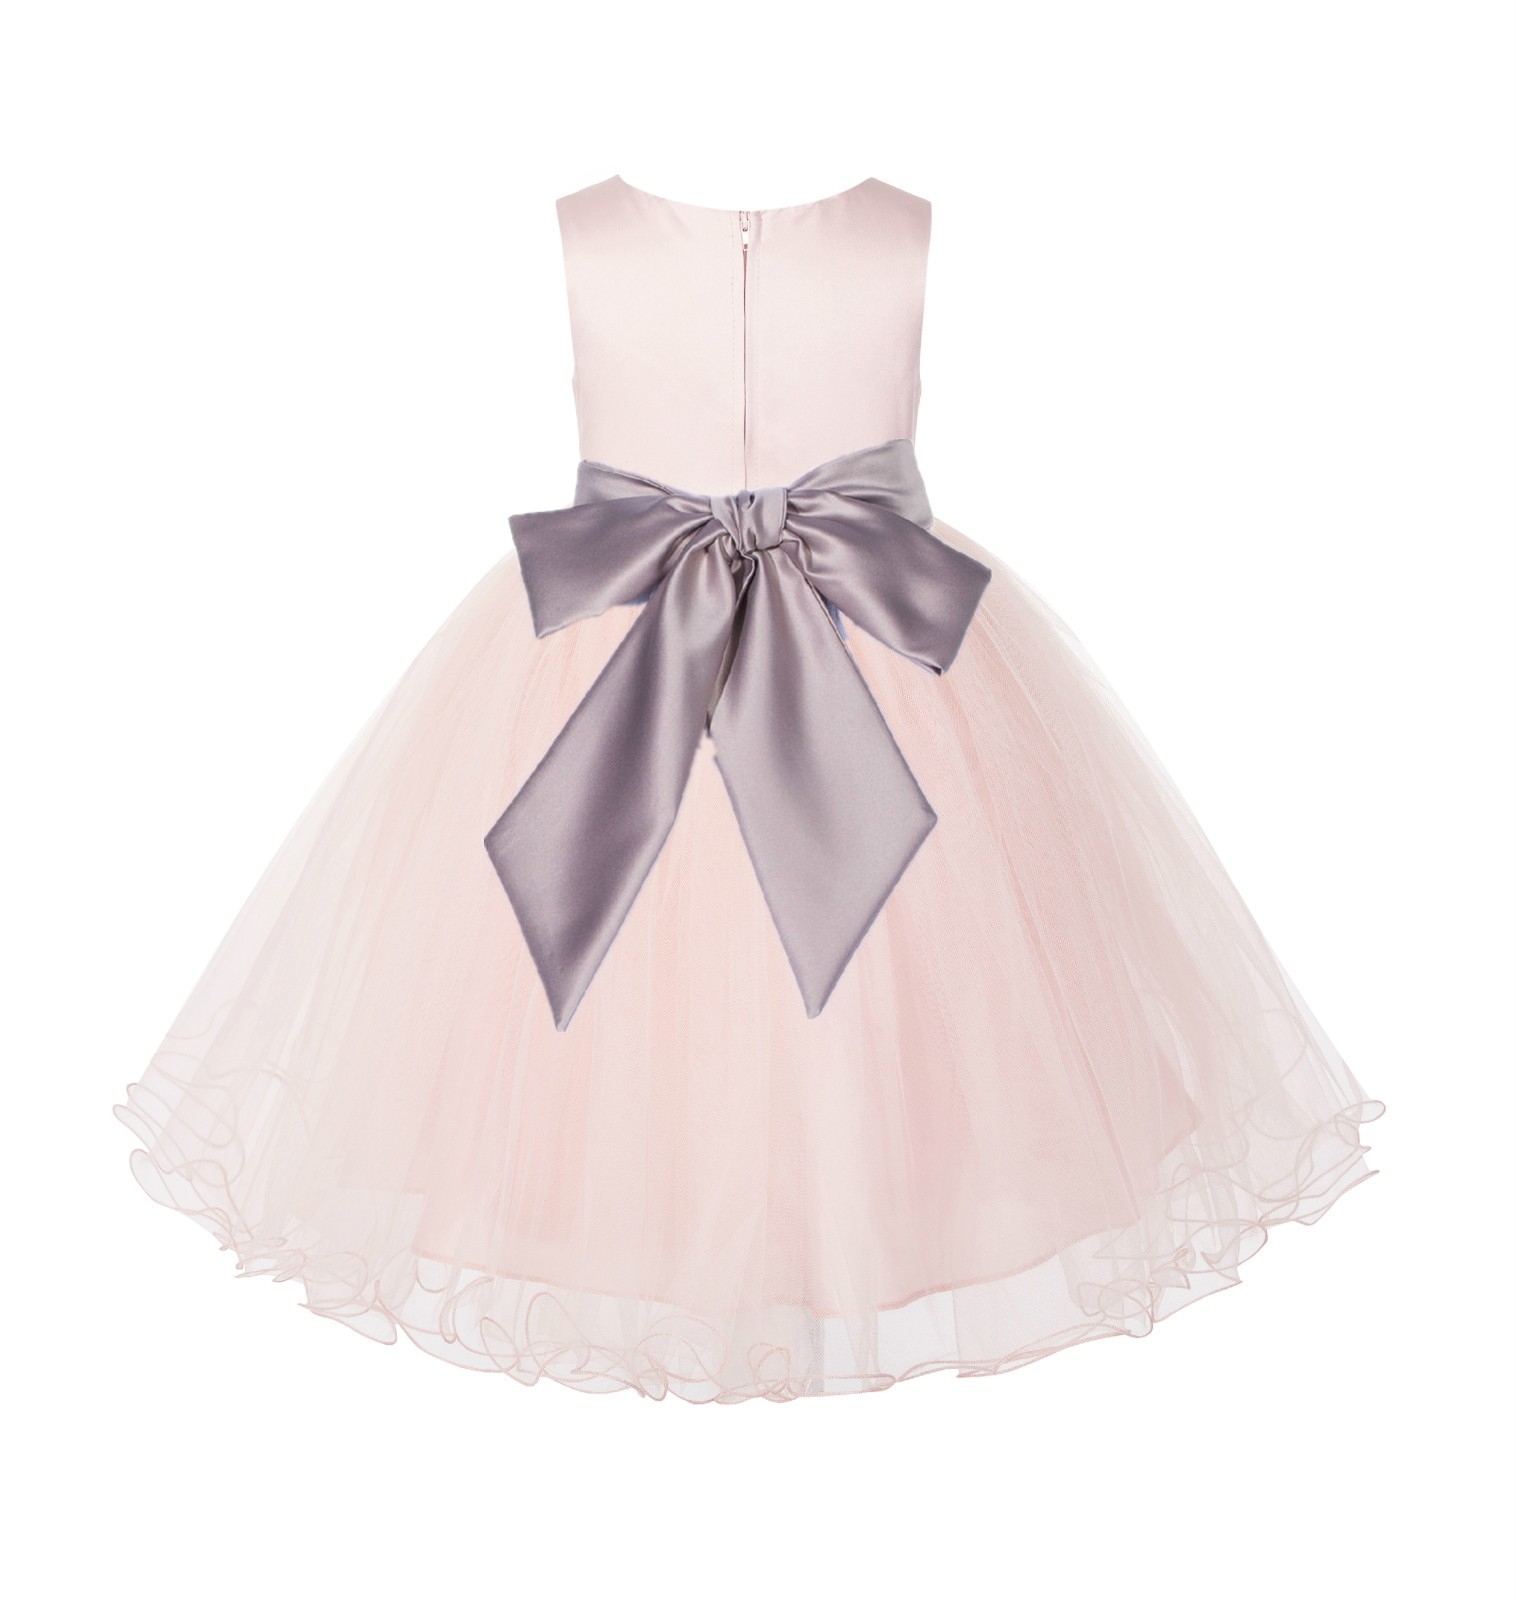 Blush Pink / Biscotti Tulle Rattail Edge Flower Girl Dress Pageant Recital 829S